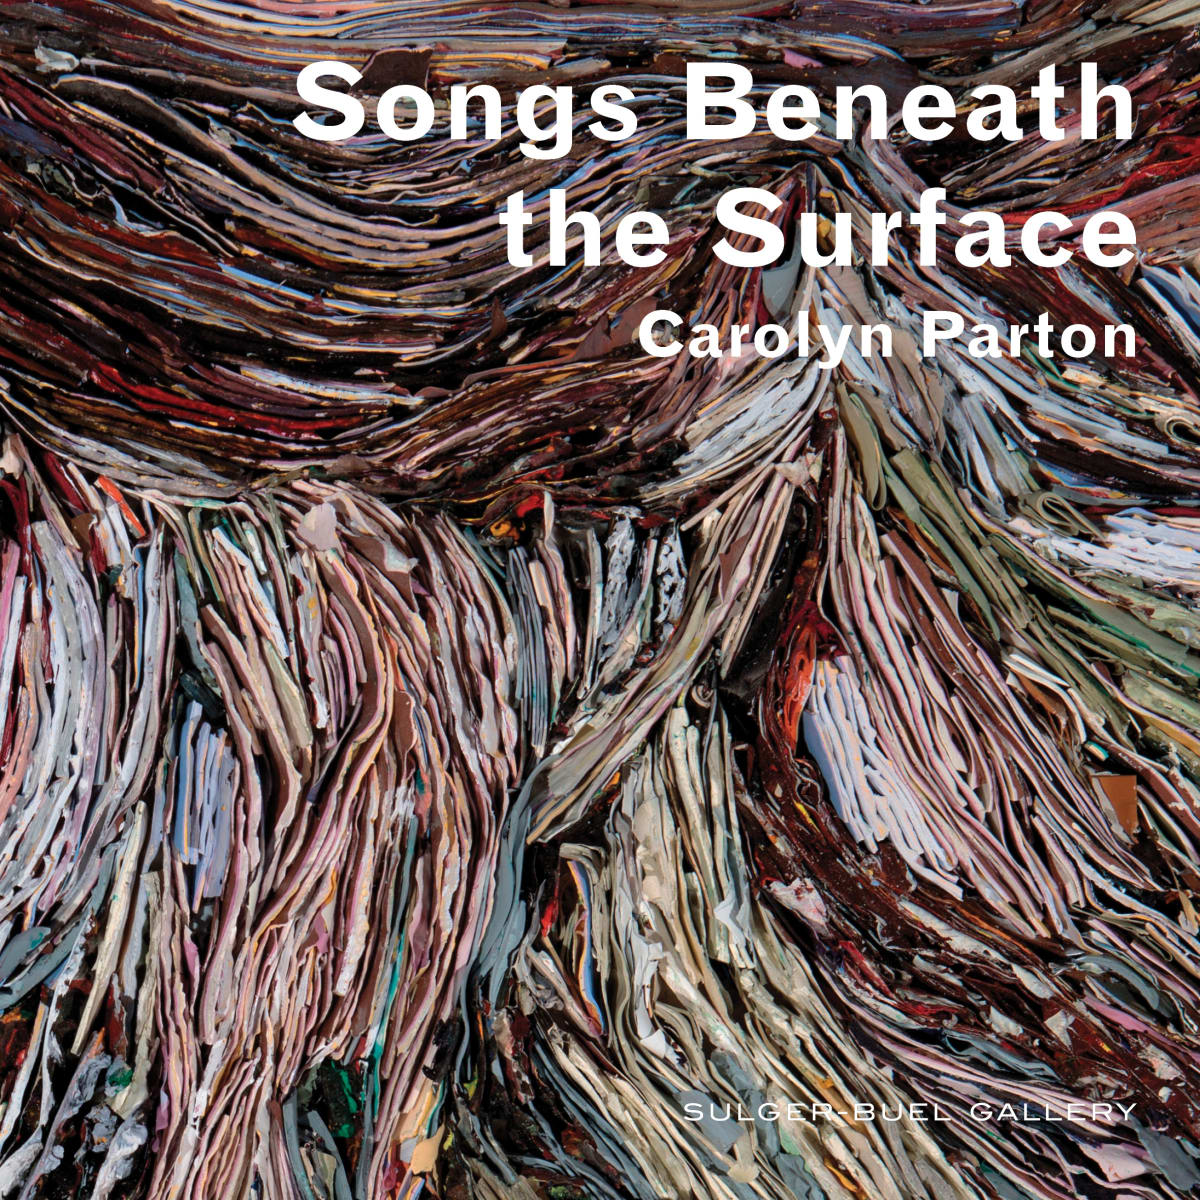 'Songs Beneath the Surface' Carolyn Parton